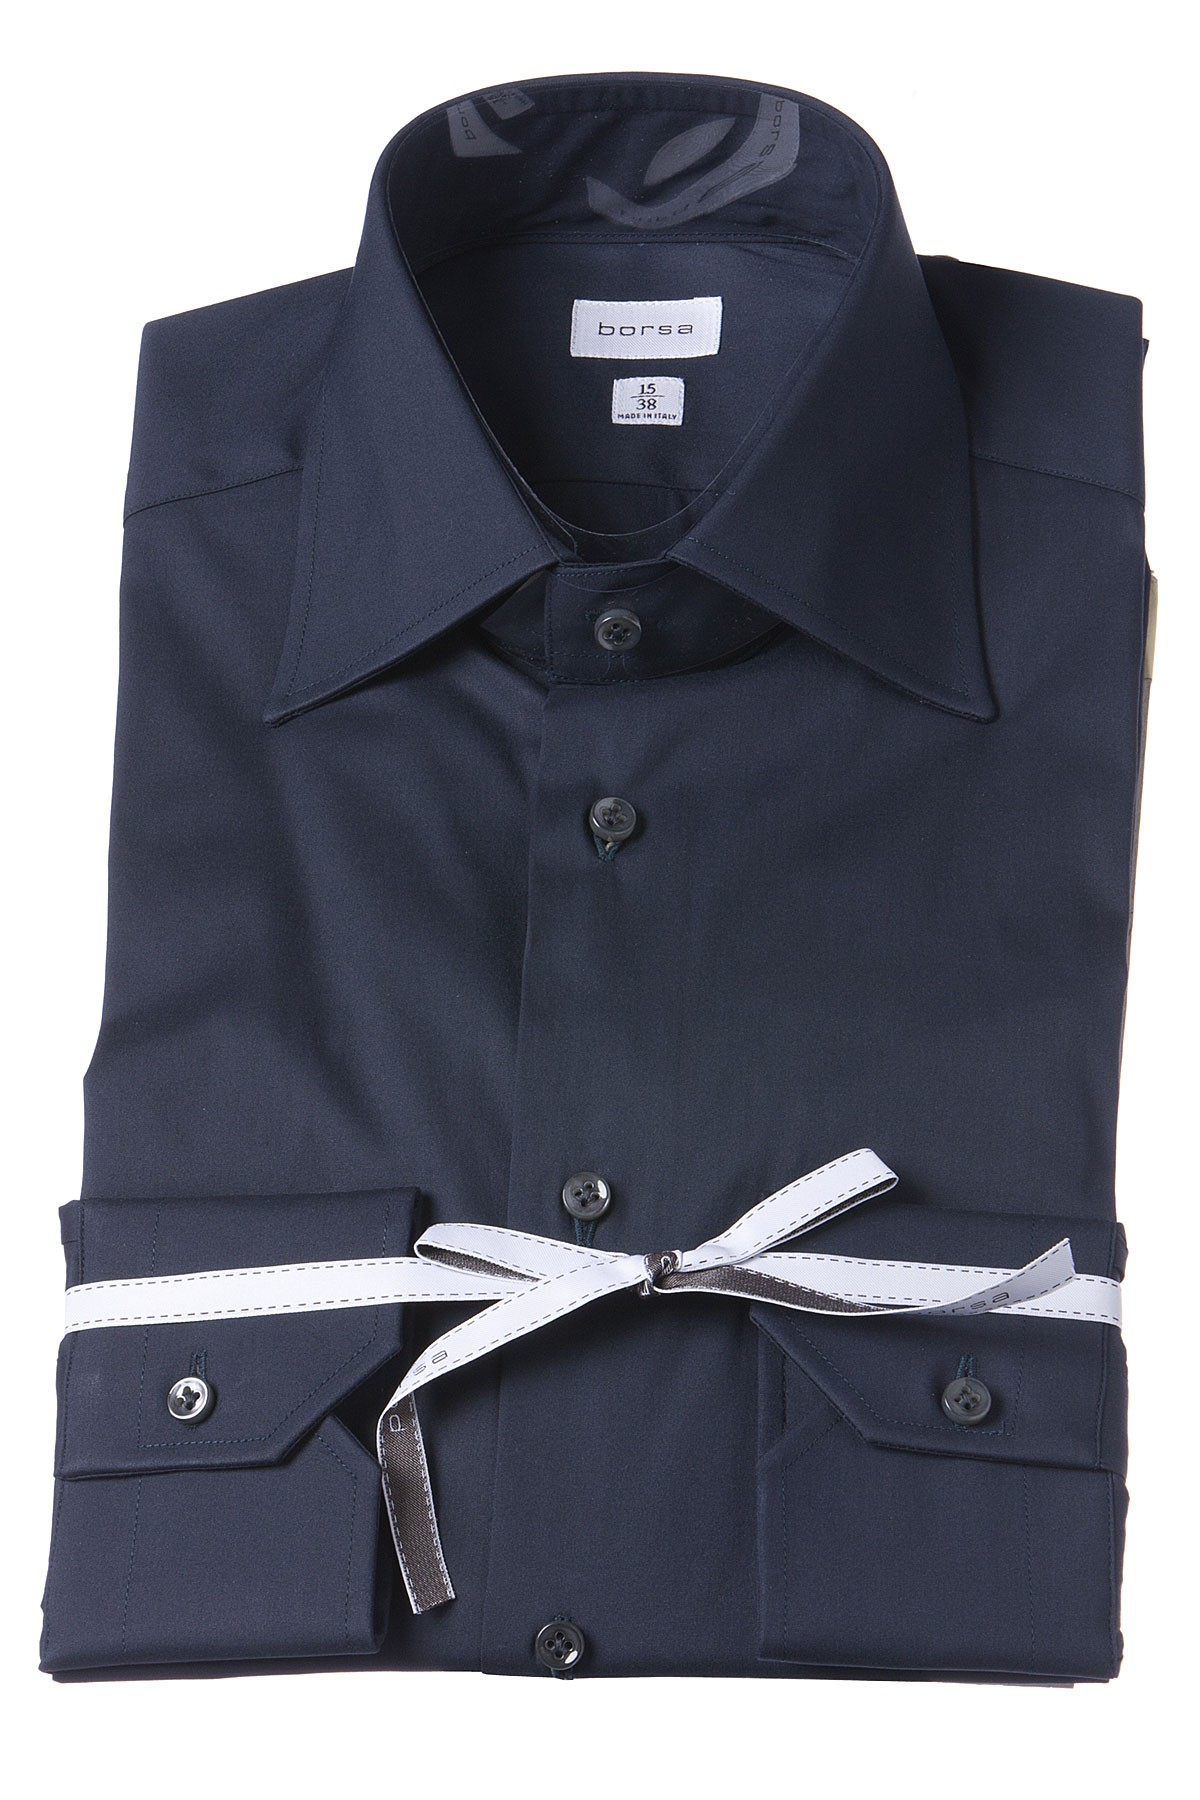 BORSA Dark blue shirt for man